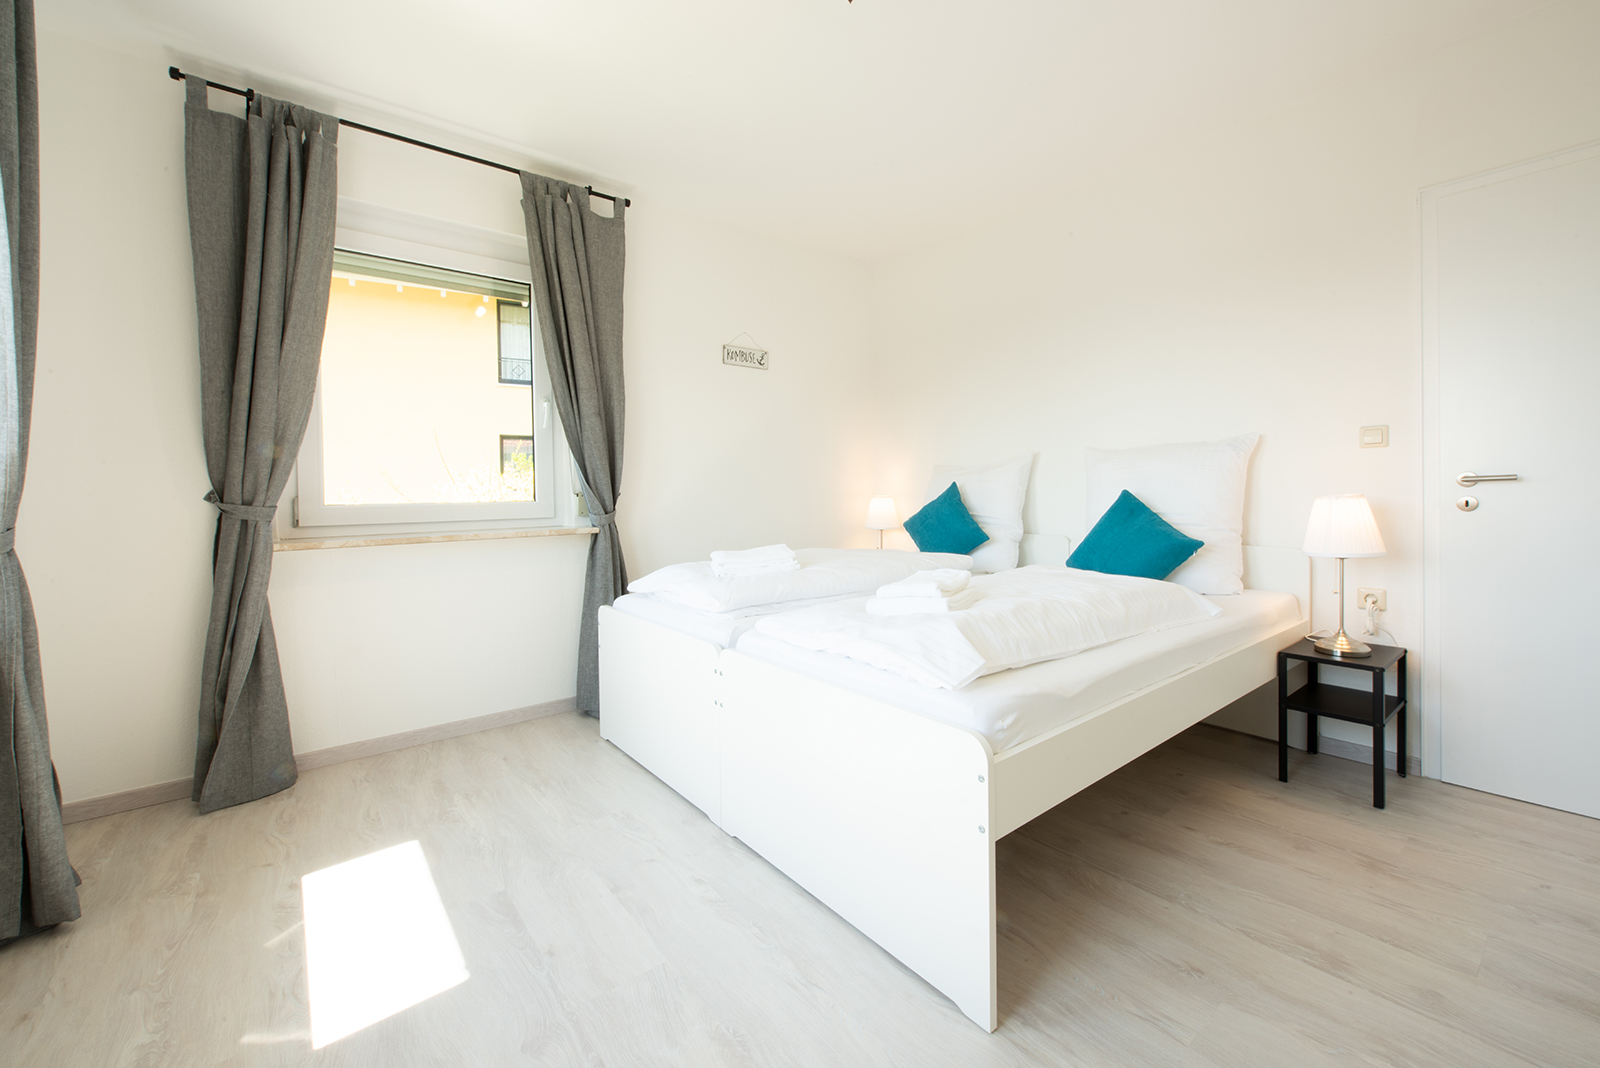 Holiday apartments on Lake Constance: Markdorf - Bedroom 1